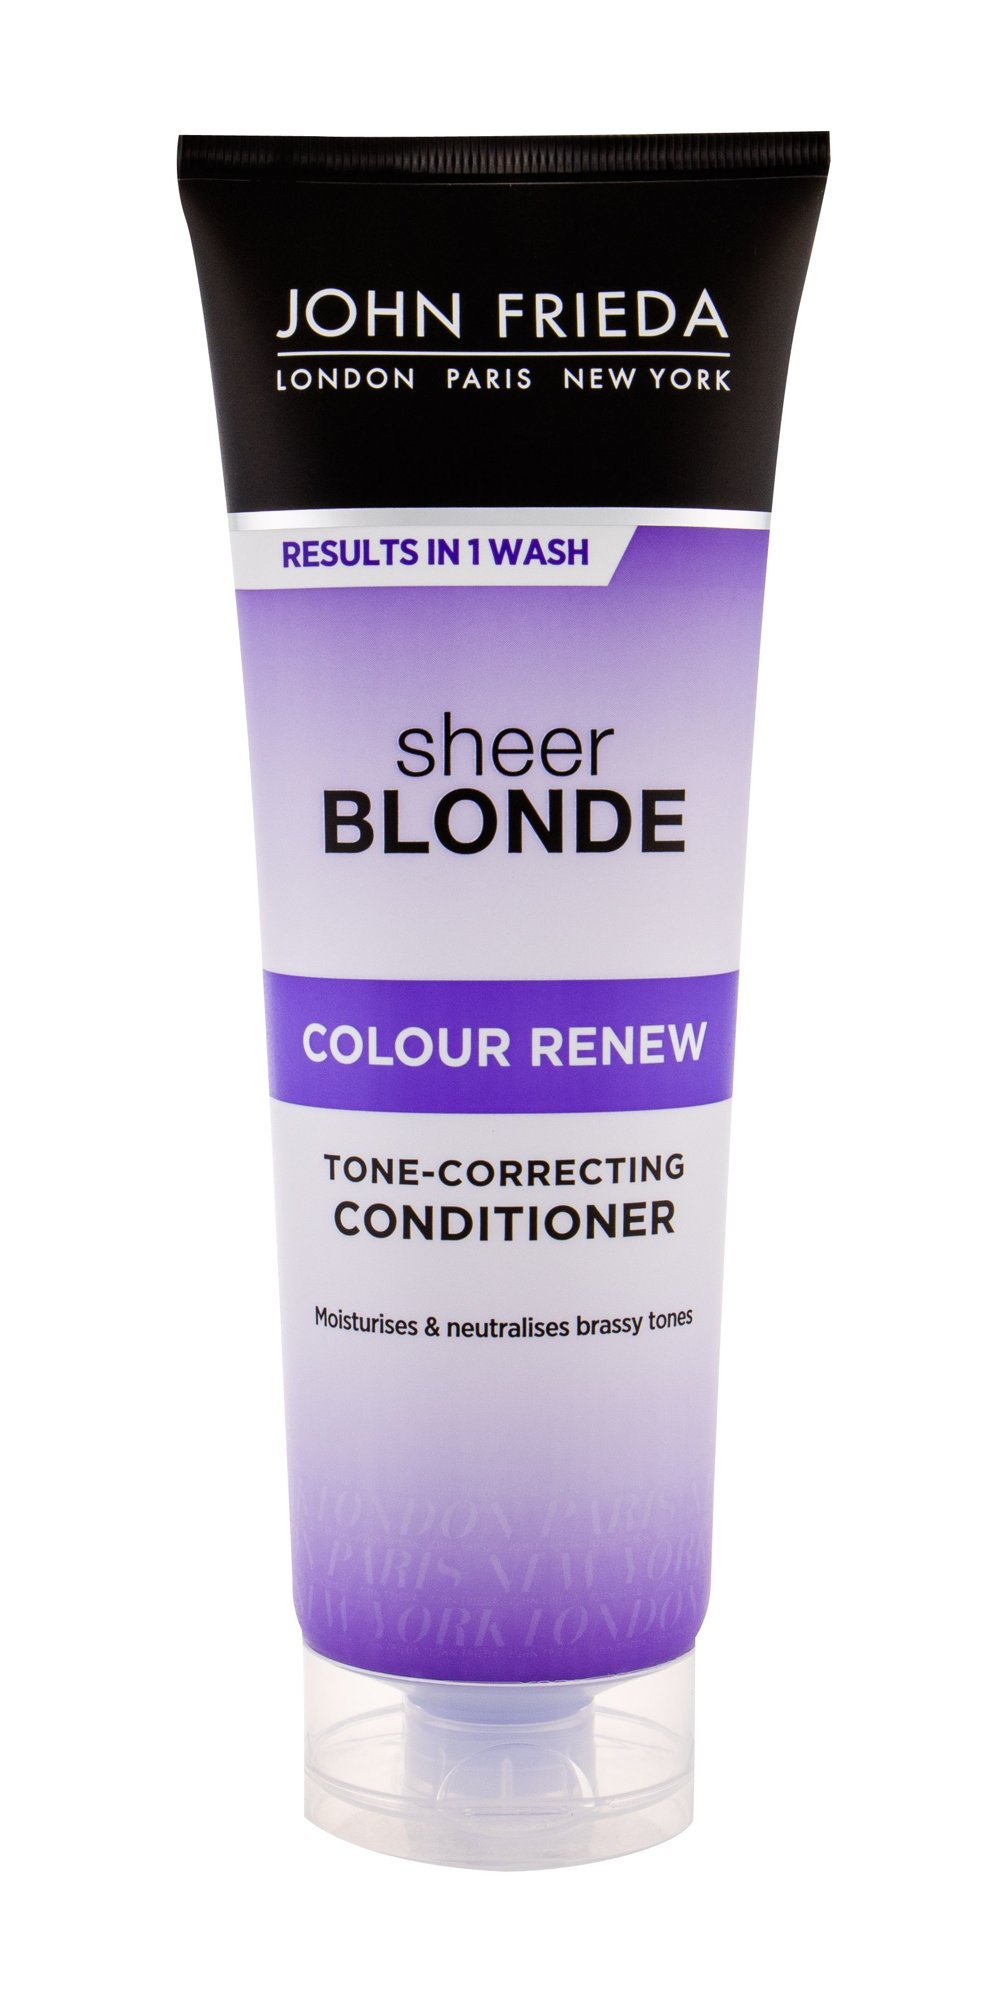 John Frieda Sheer Blonde Conditioner 250ml  Colour Renew